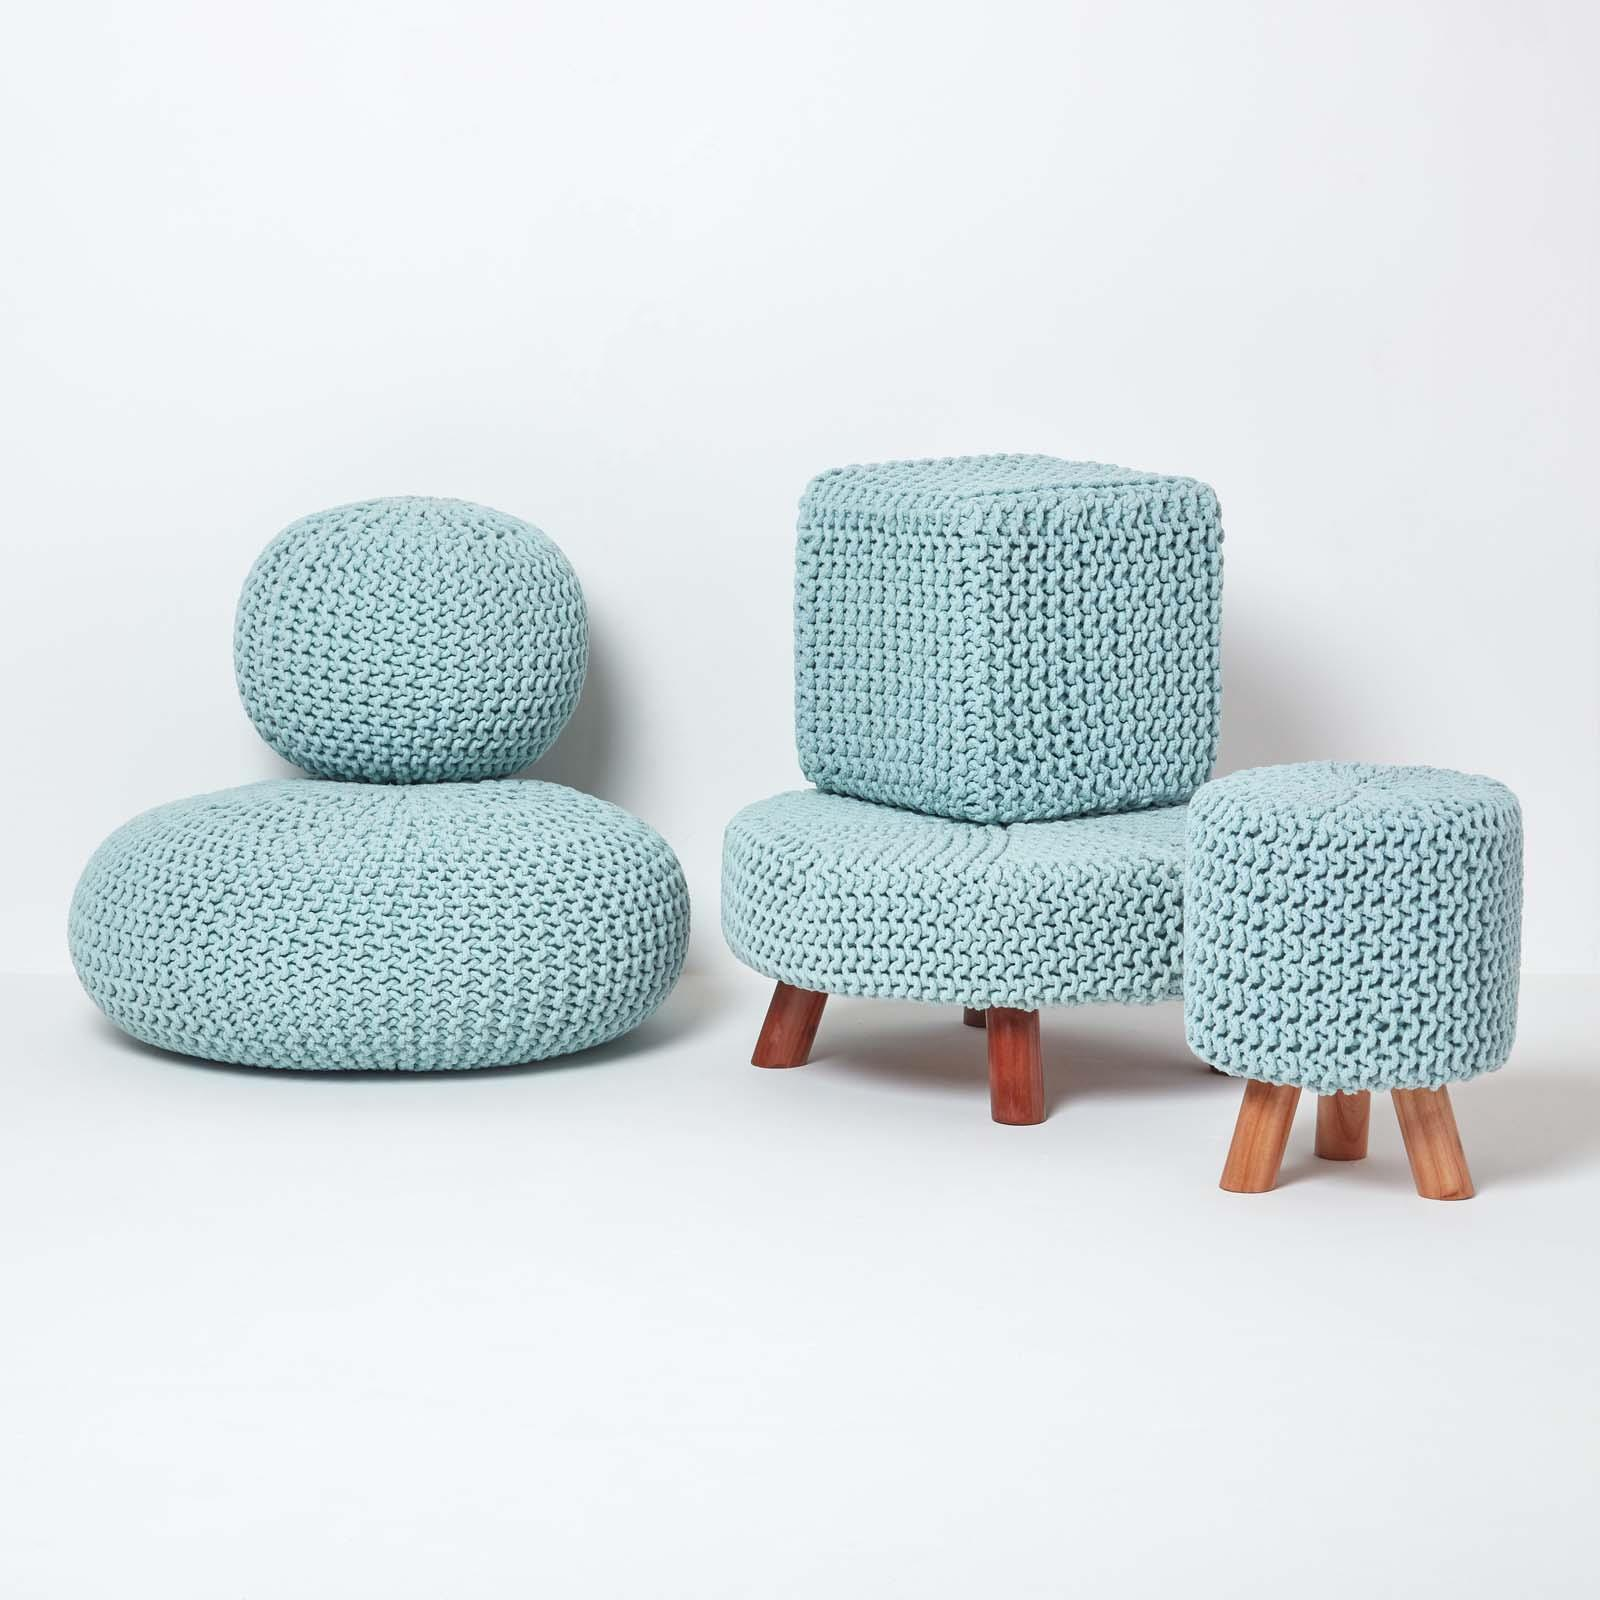 Hand-Knitted-100-Cotton-Pouffes-Round-Sphere-Or-Cube-Square-Chunky-Footstools thumbnail 137